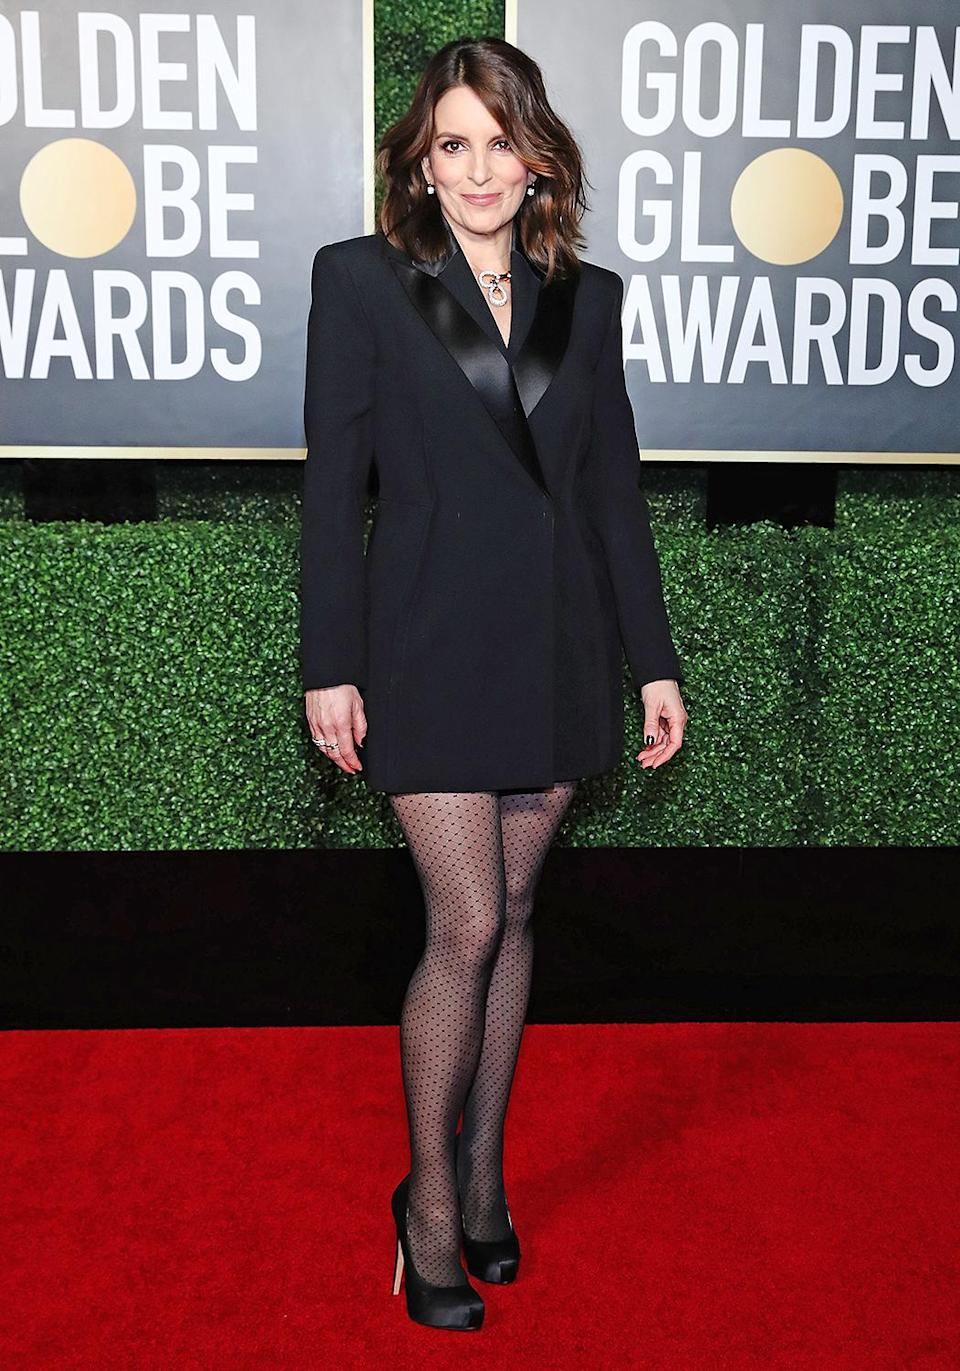 <p>Actress and comedian Tina Fey was born on May 18. </p>